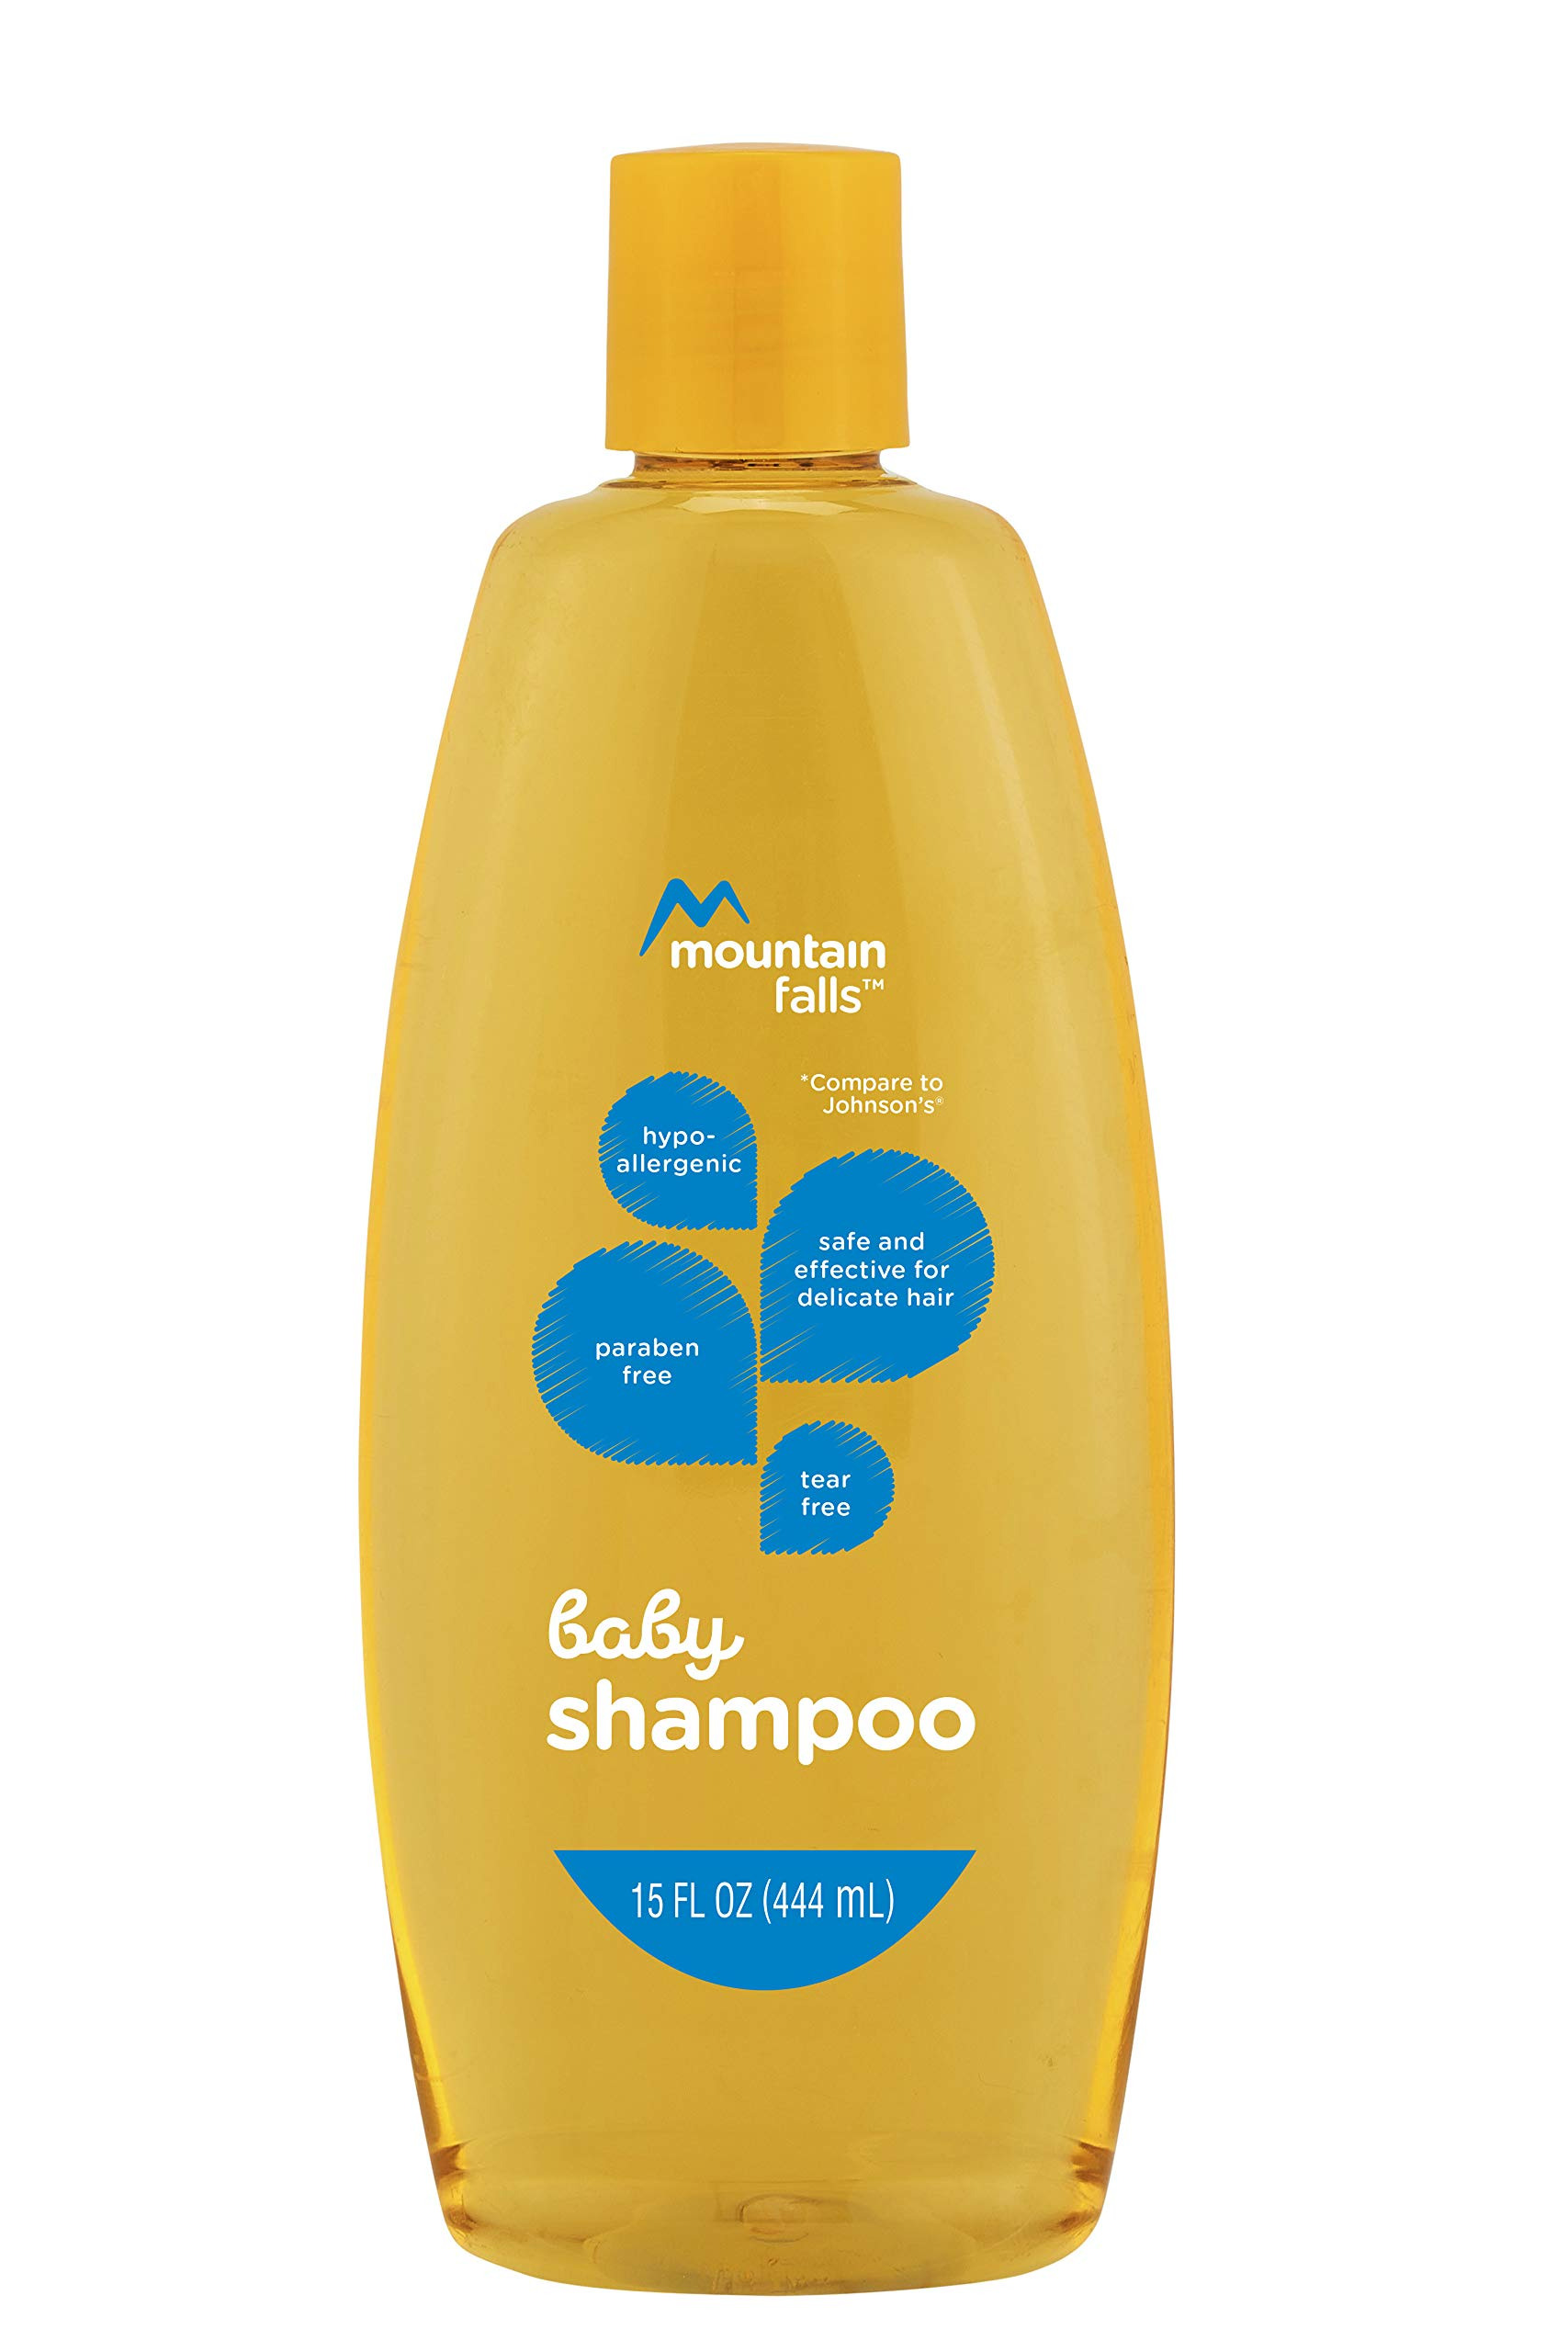 Mountain Falls Hypoallergenic Tear-free Baby Shampoo, Compare to Johnson's, 15 Fluid Ounce